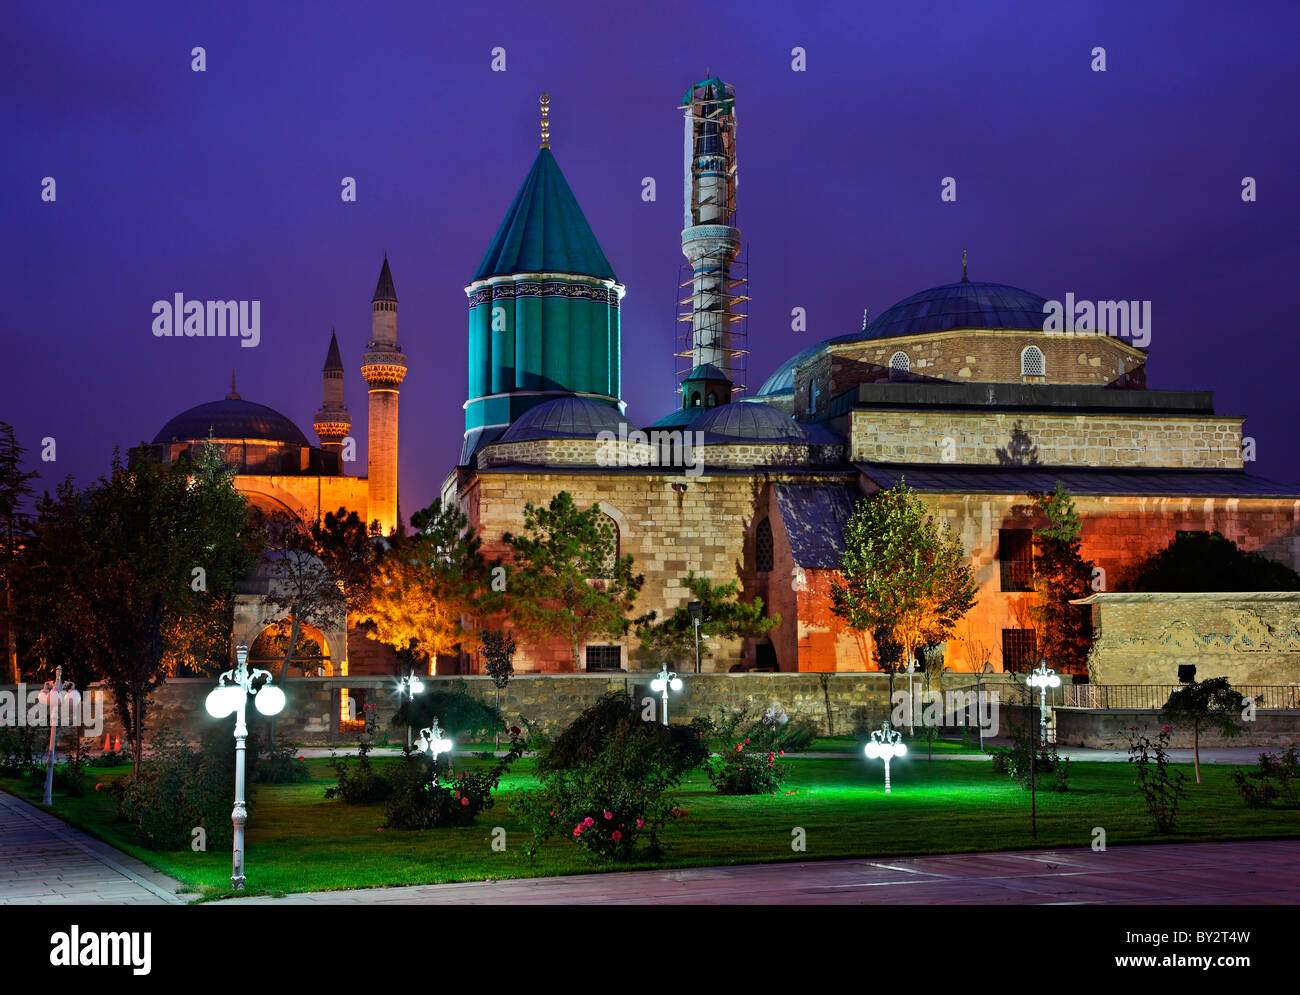 The Mevlana Museum, in Konya, Turkey, in the 'blue' hour, with its famous green-turquoise dome - Stock Image